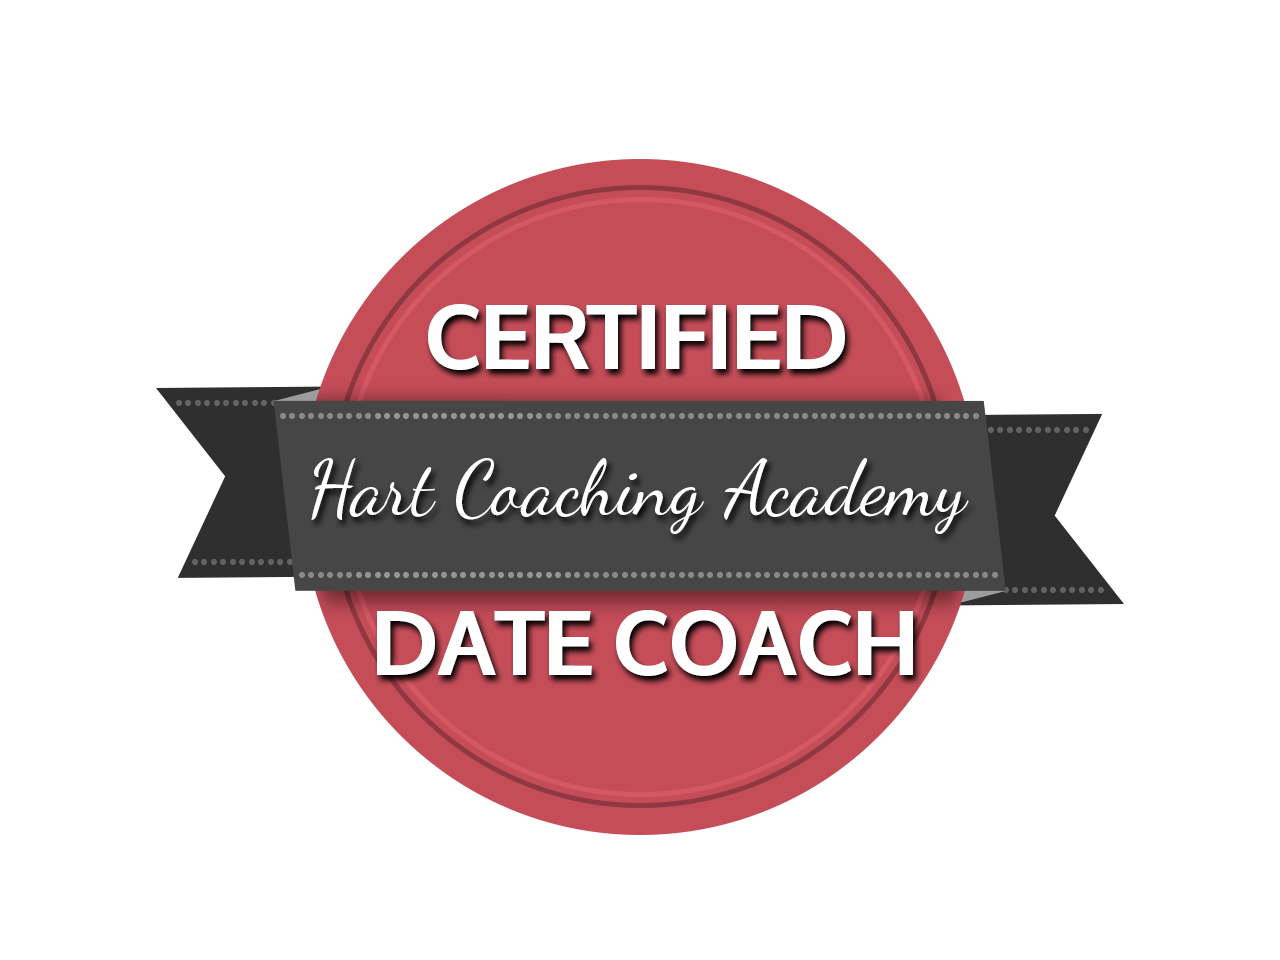 heartcoaching academy